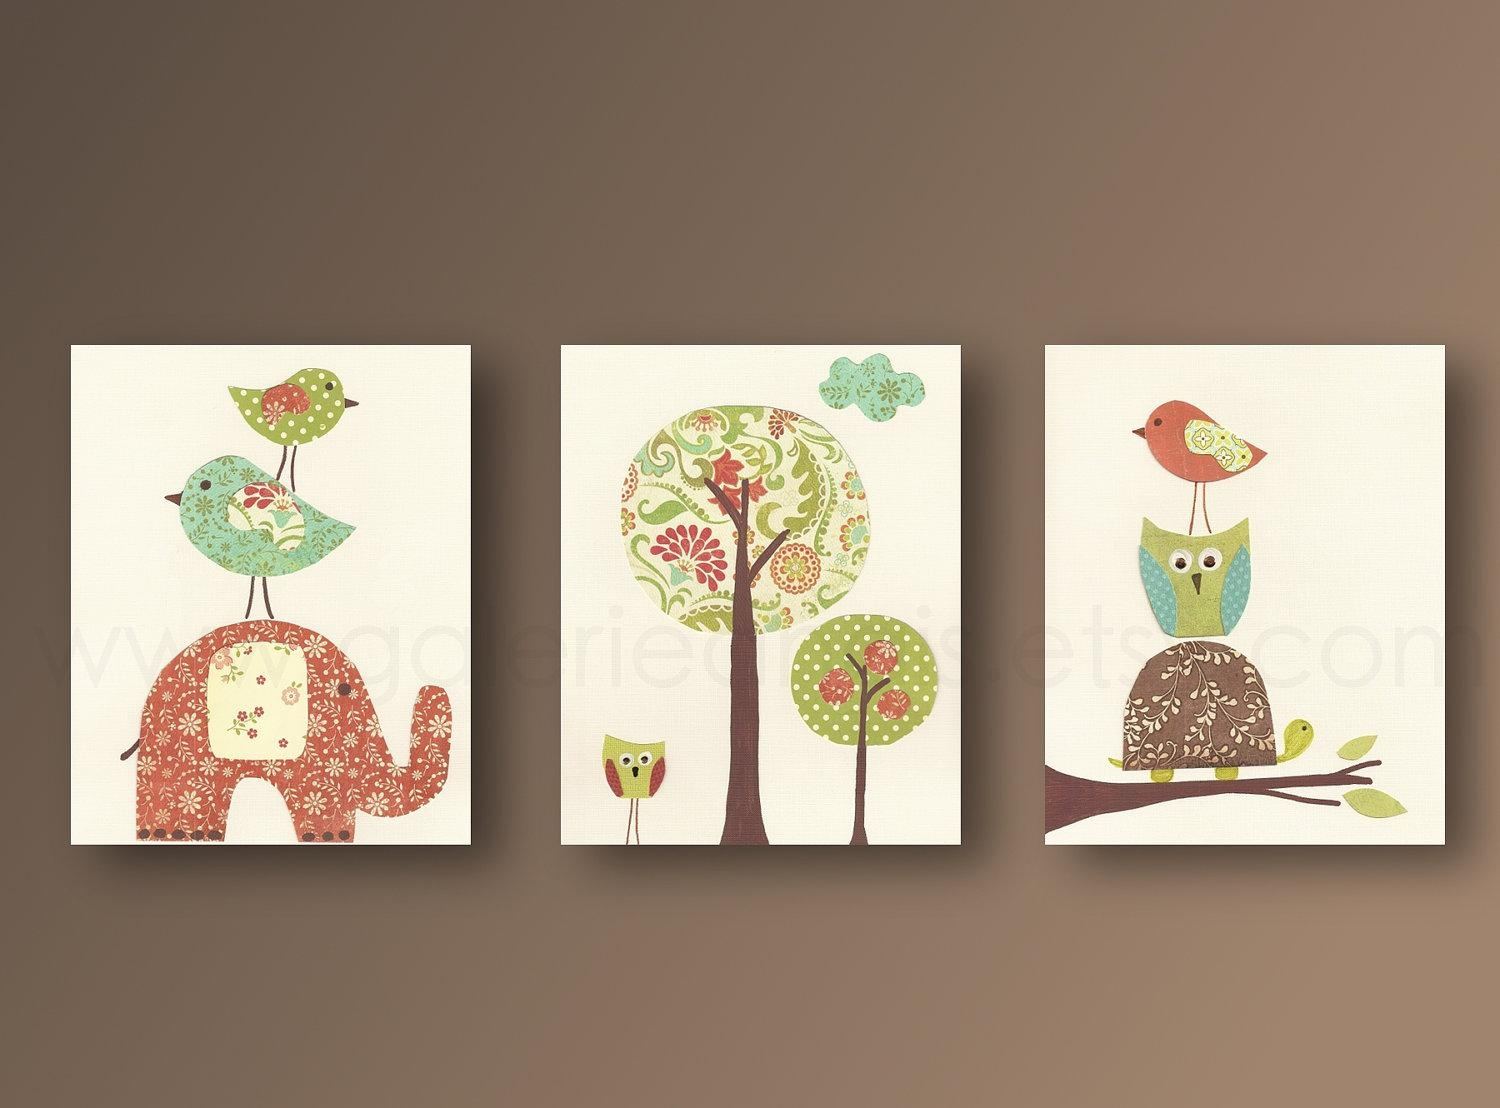 Nursery Wall Art Nursery Art Baby Nursery Kids Room Decor Owl for Childrens Wall Art Canvas